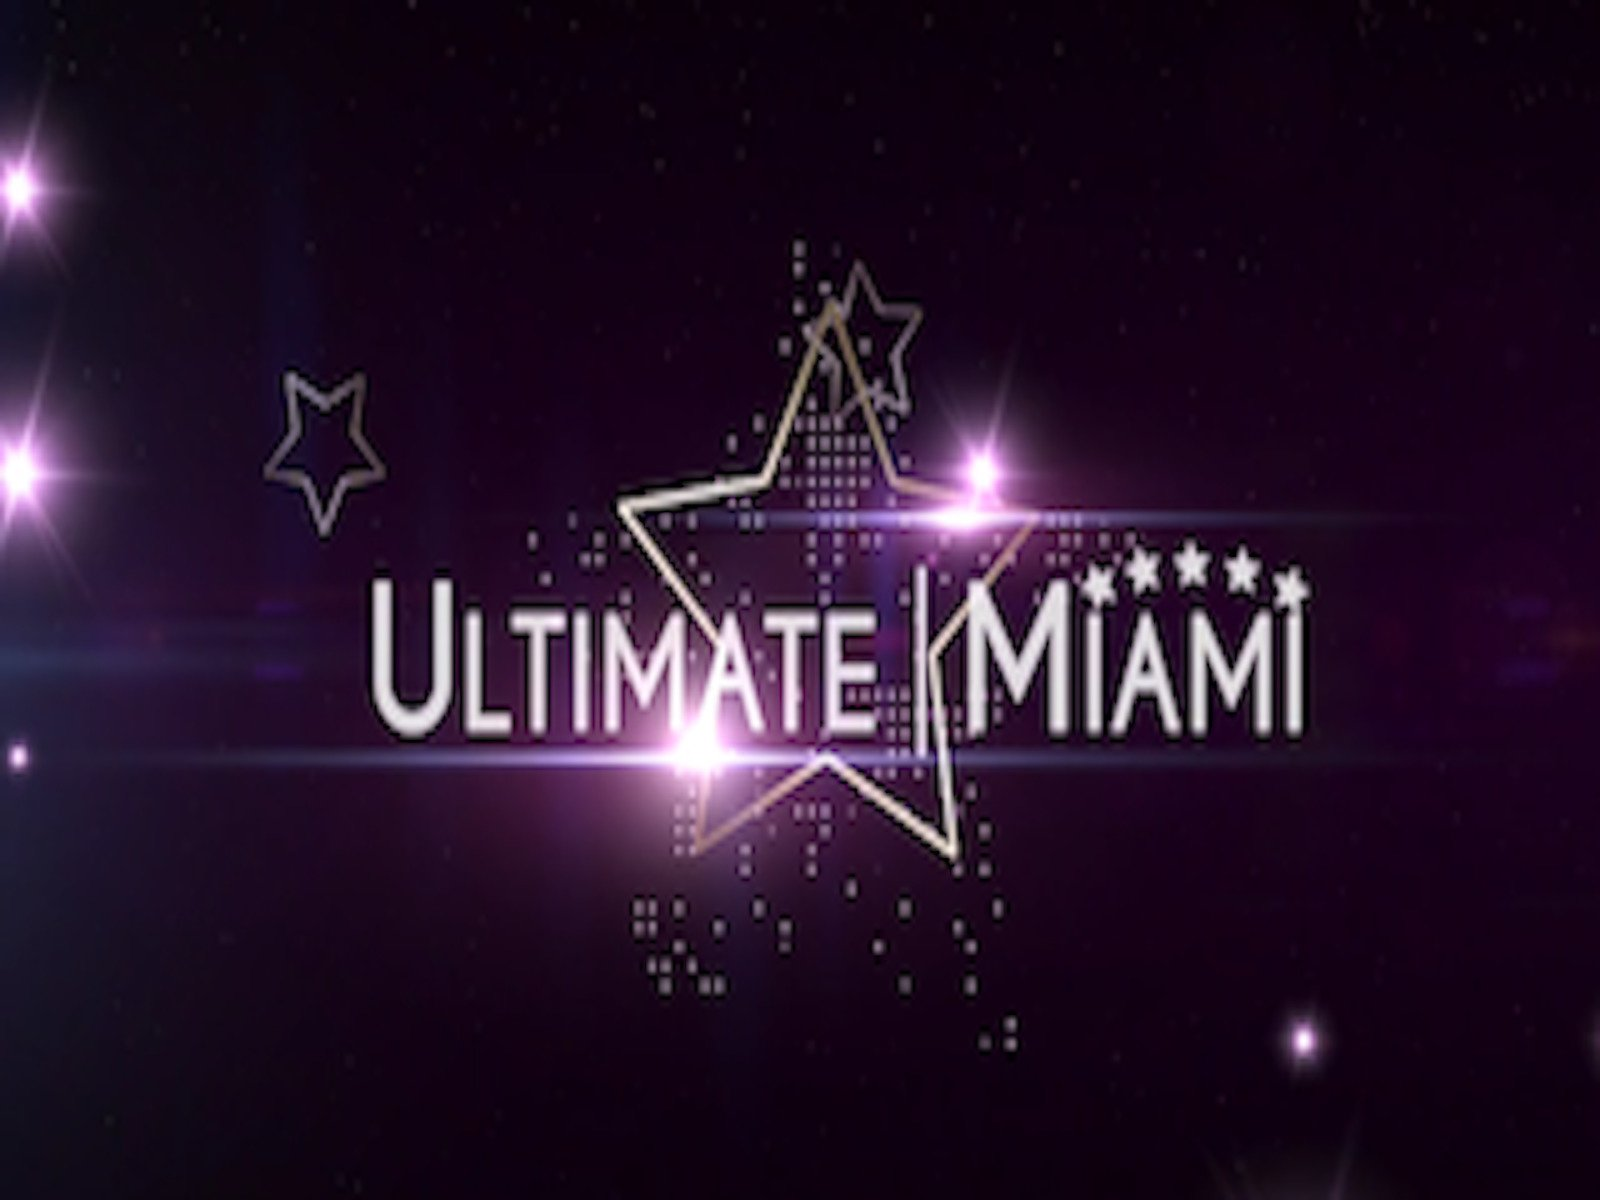 Ultimate Miami - Season 1